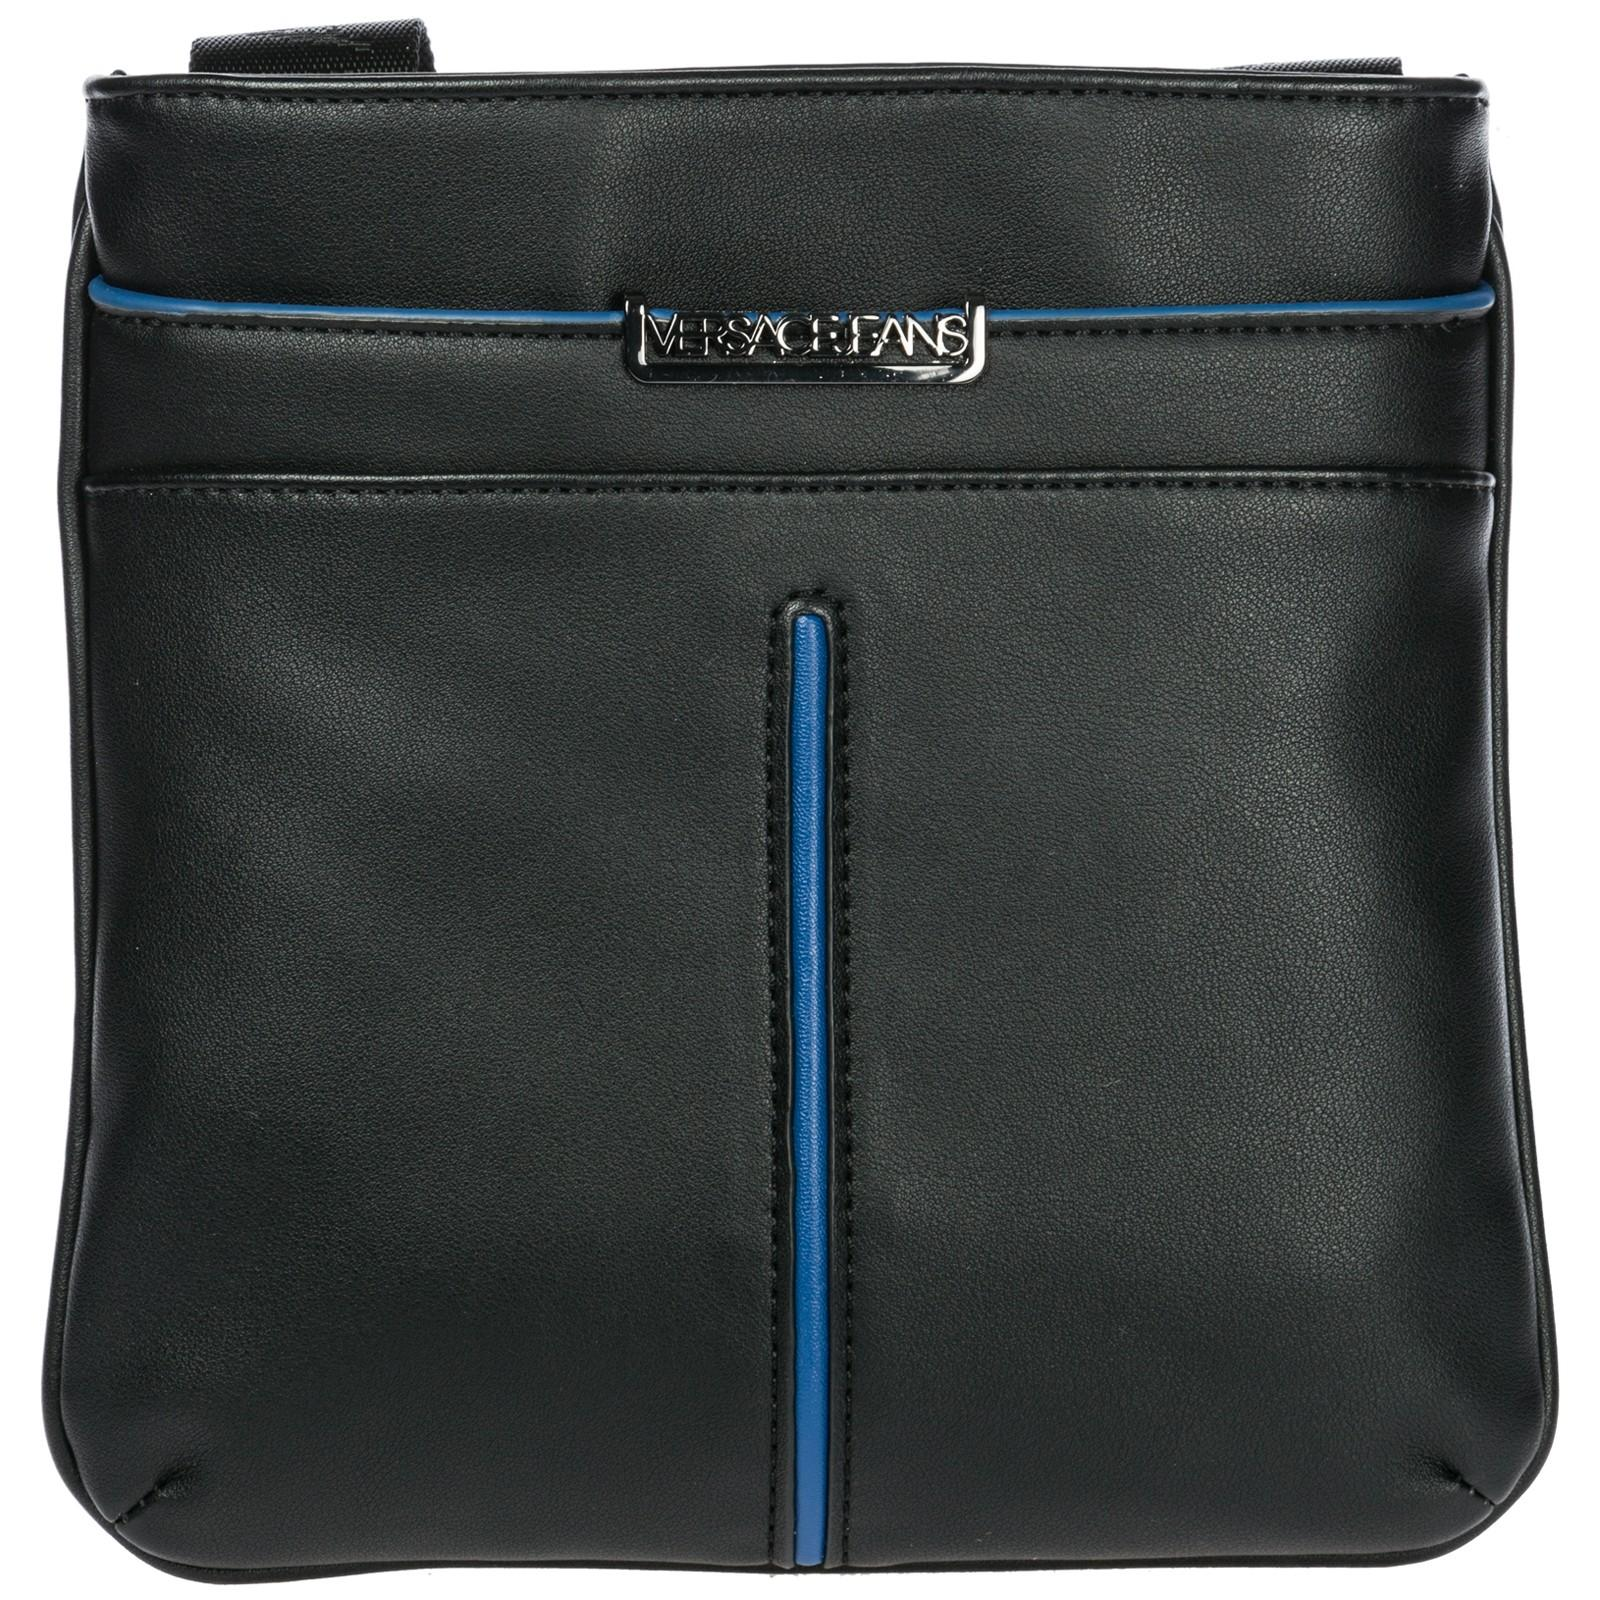 70d94f926864 Versace Jeans Men S Cross-Body Messenger Shoulder Bag In Black ...